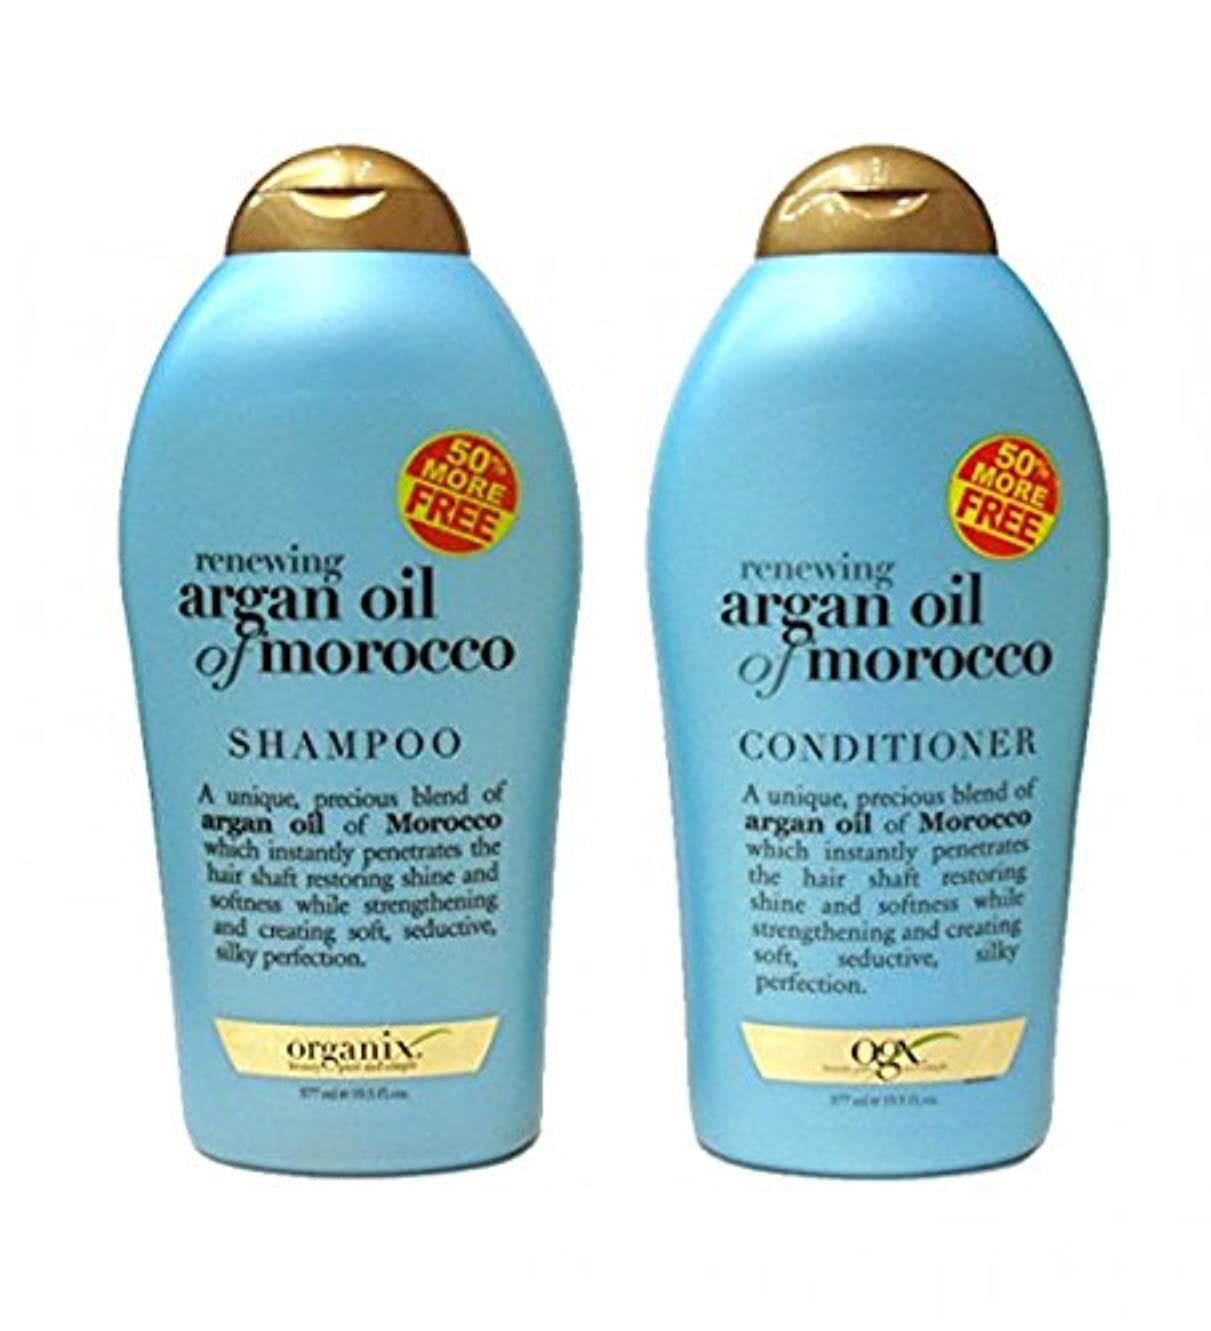 検出器公平なミュートOGX Organix Argan Oil of Morocco Shampoo & Conditioner Set (19.5 Oz Set) [並行輸入品]